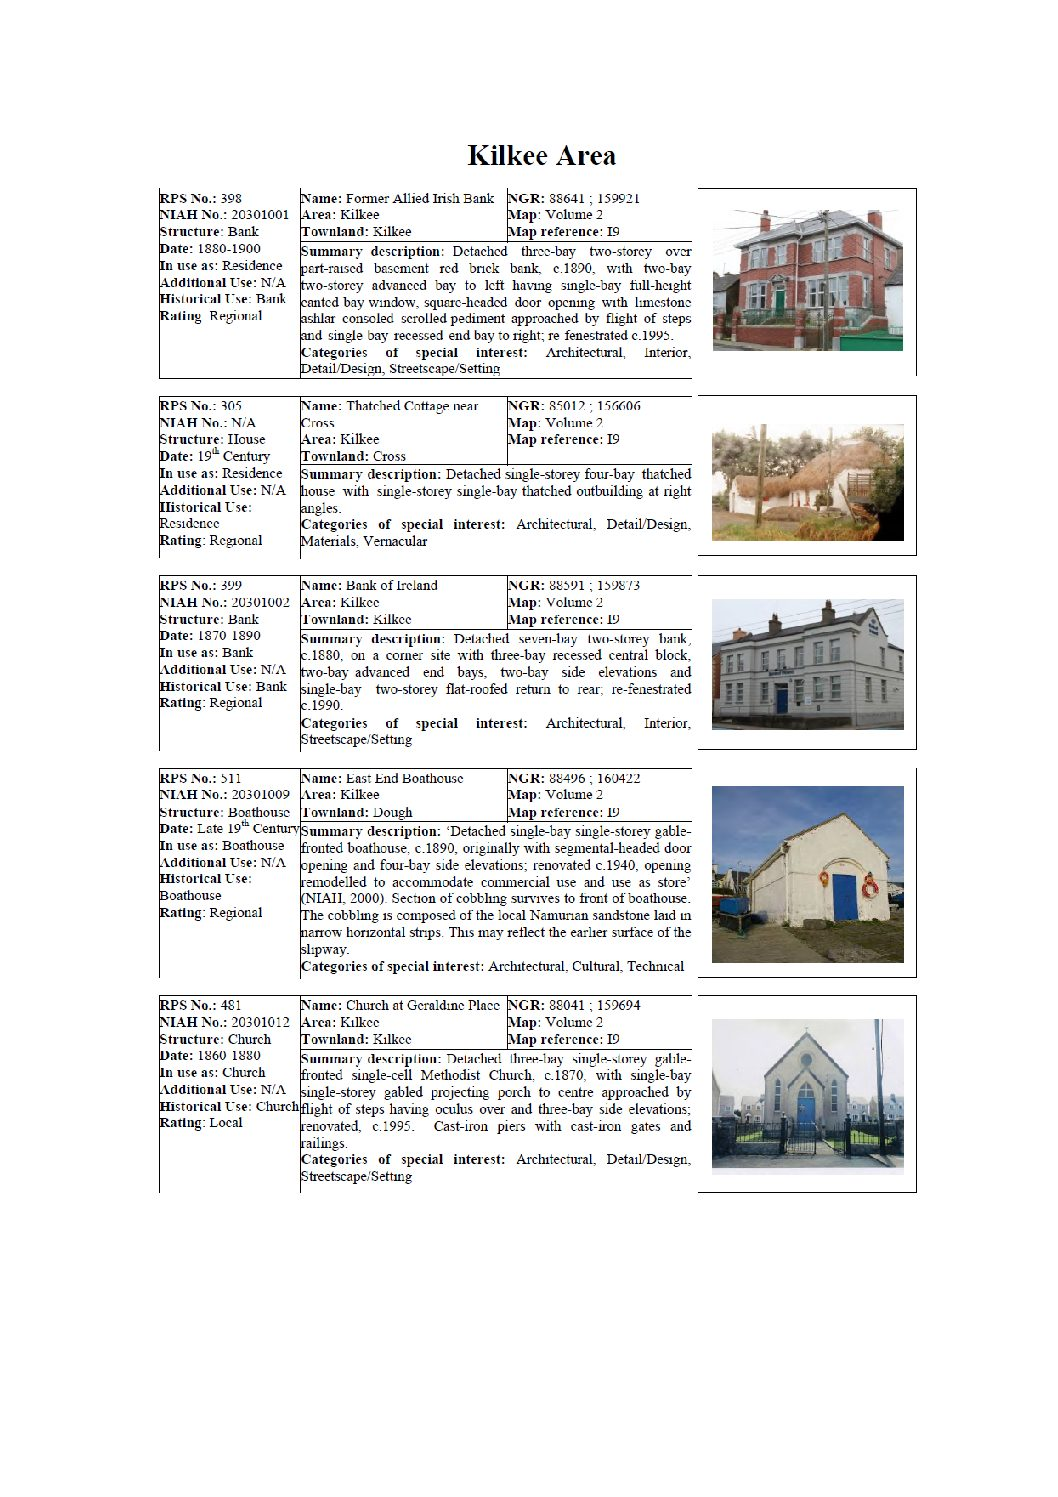 Kilkee Protected Structures